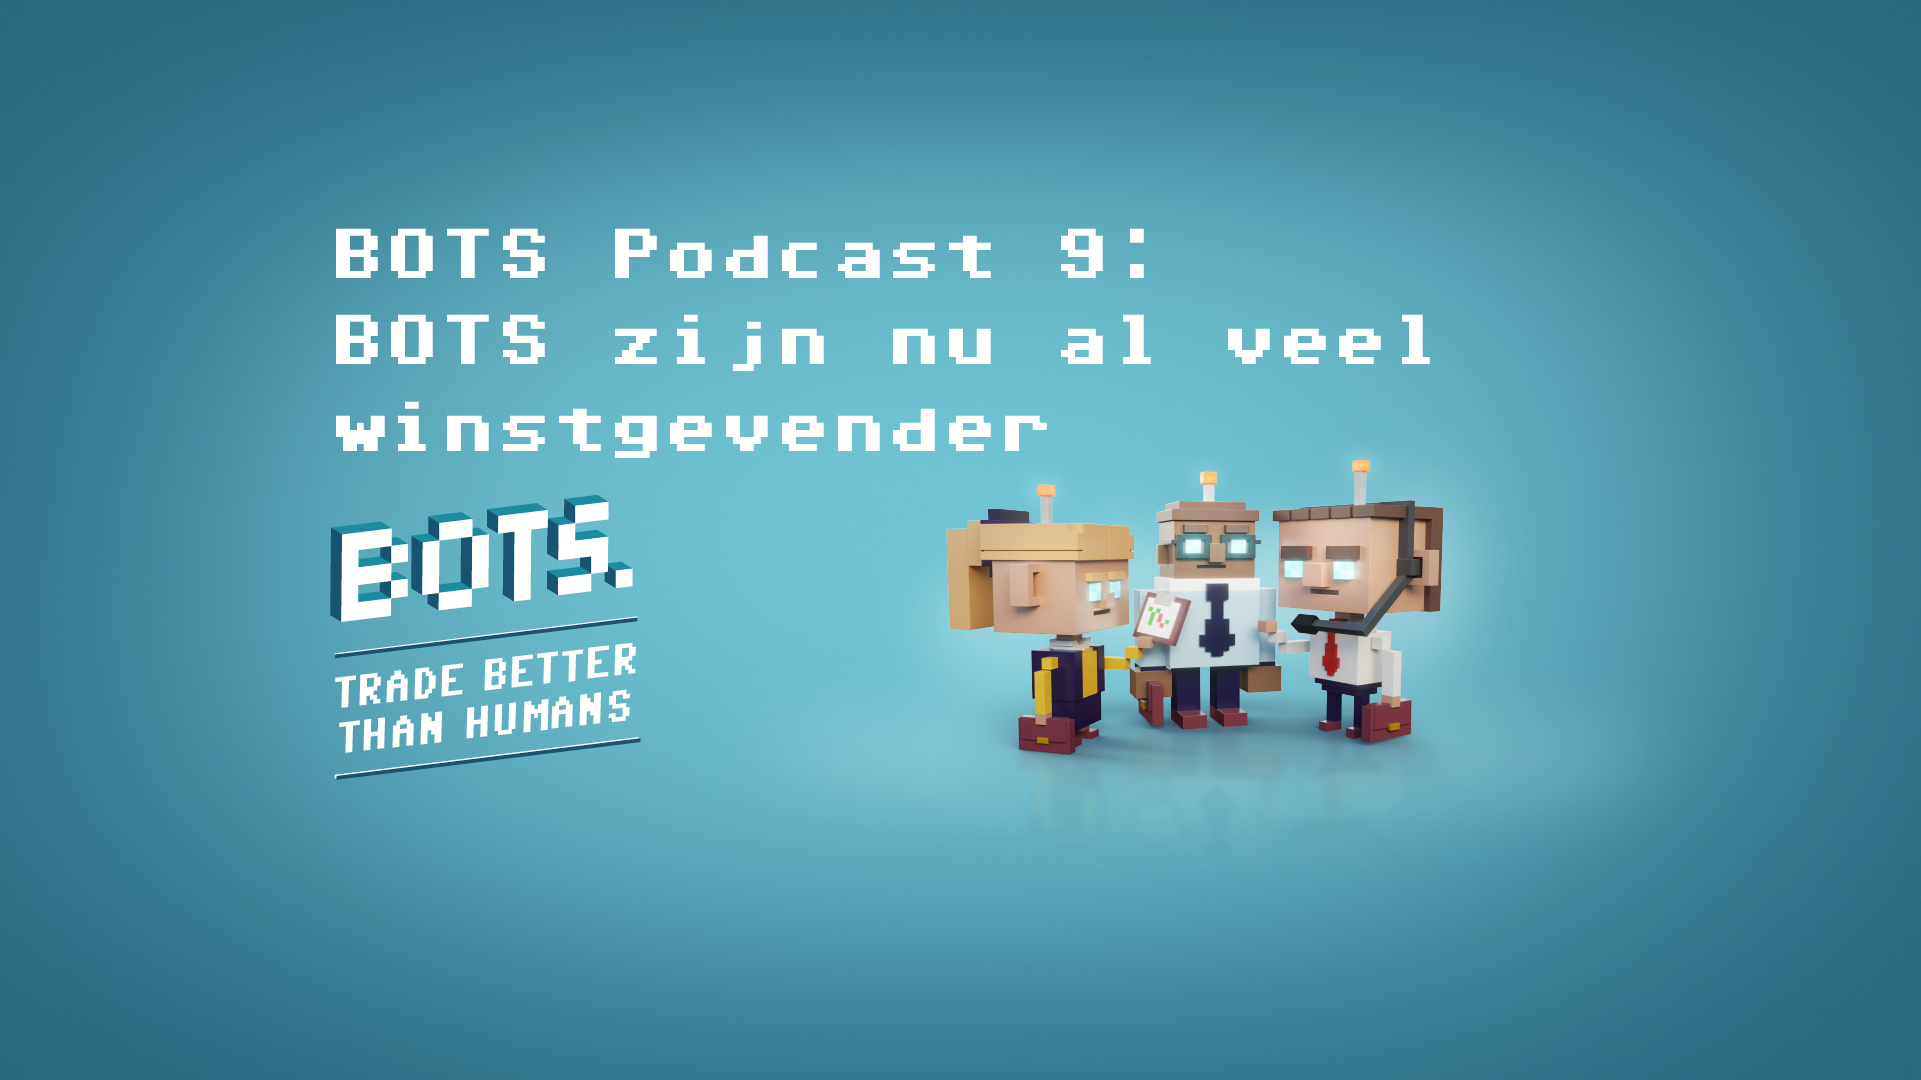 Podcast 9: BOTS are already much more profitable